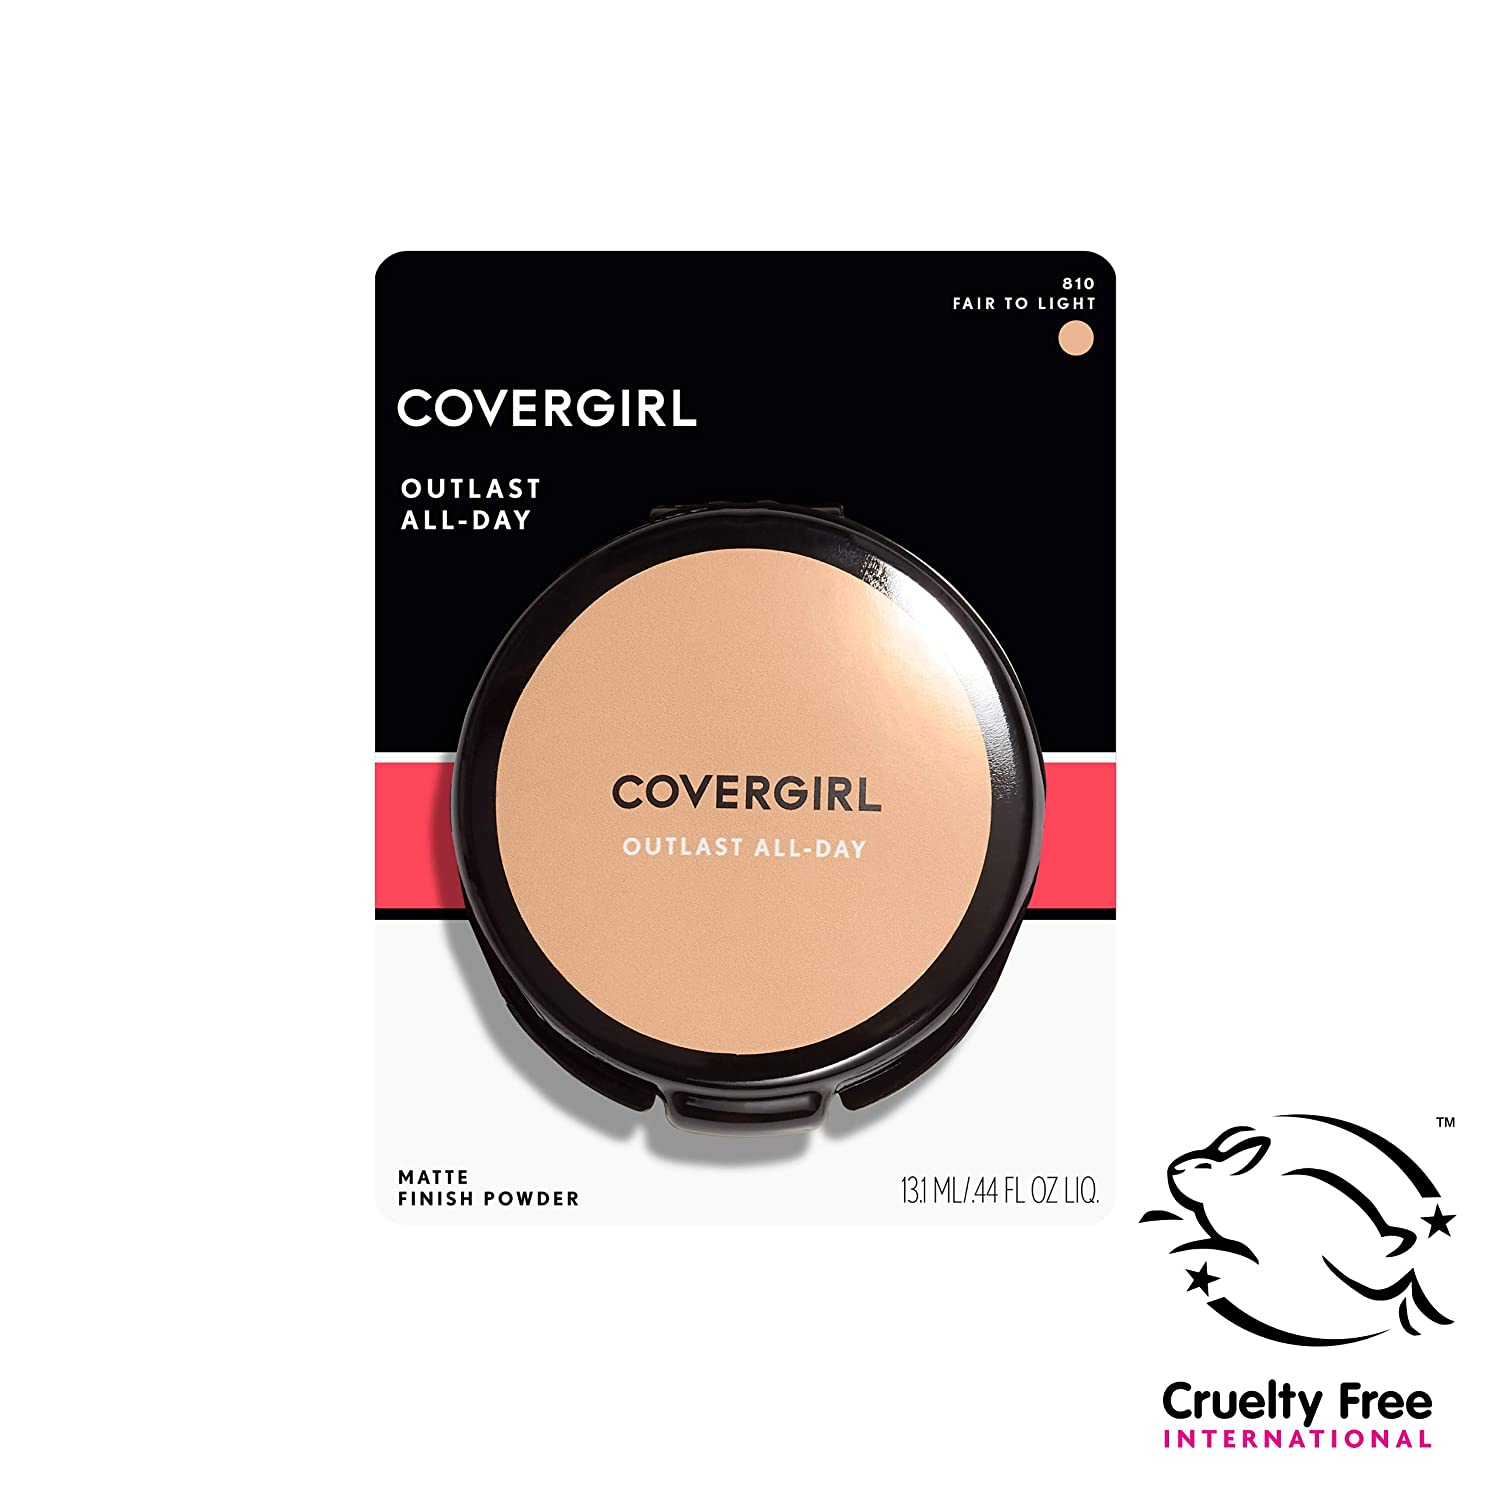 COVERGIRL Outlast All-Day Matte Finishing Powder, Fair to Light, 0.39 Ounce (Packaging May Vary)